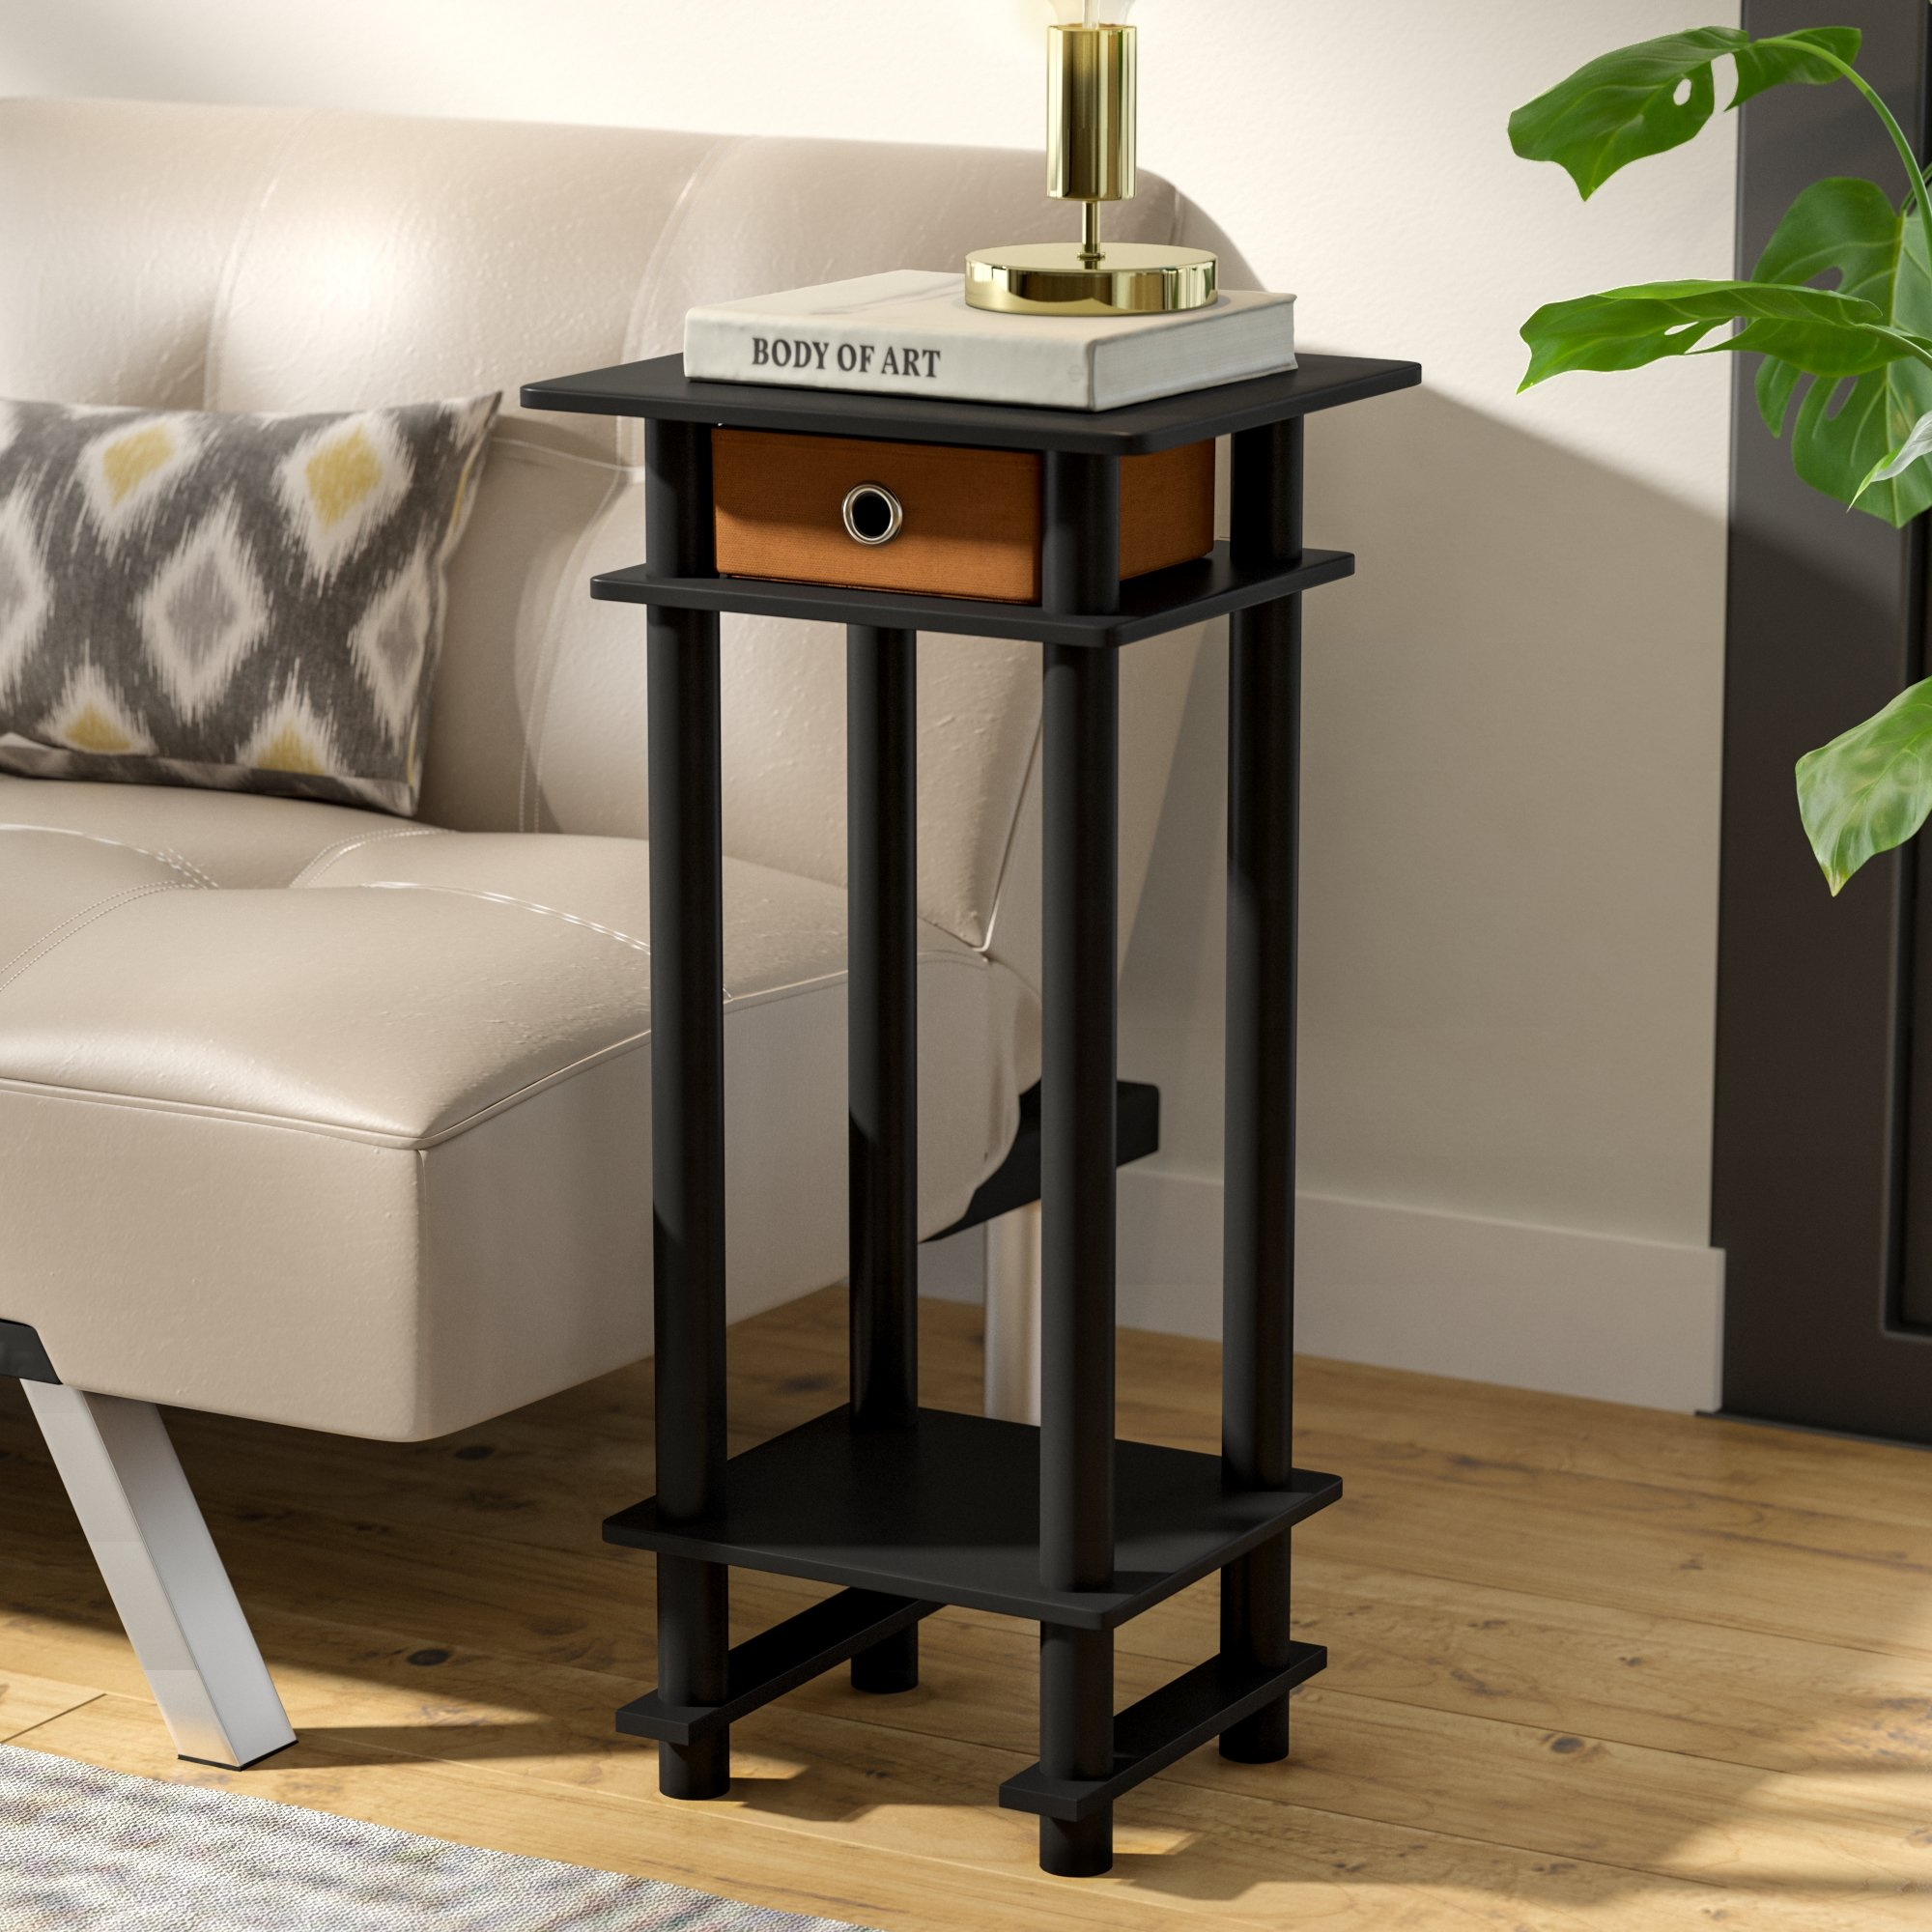 accent tables for small spaces chrisley end table with bin ifrane quickview argos side carpet room divider strip hampton bay outdoor furniture nautical light fixtures indoor